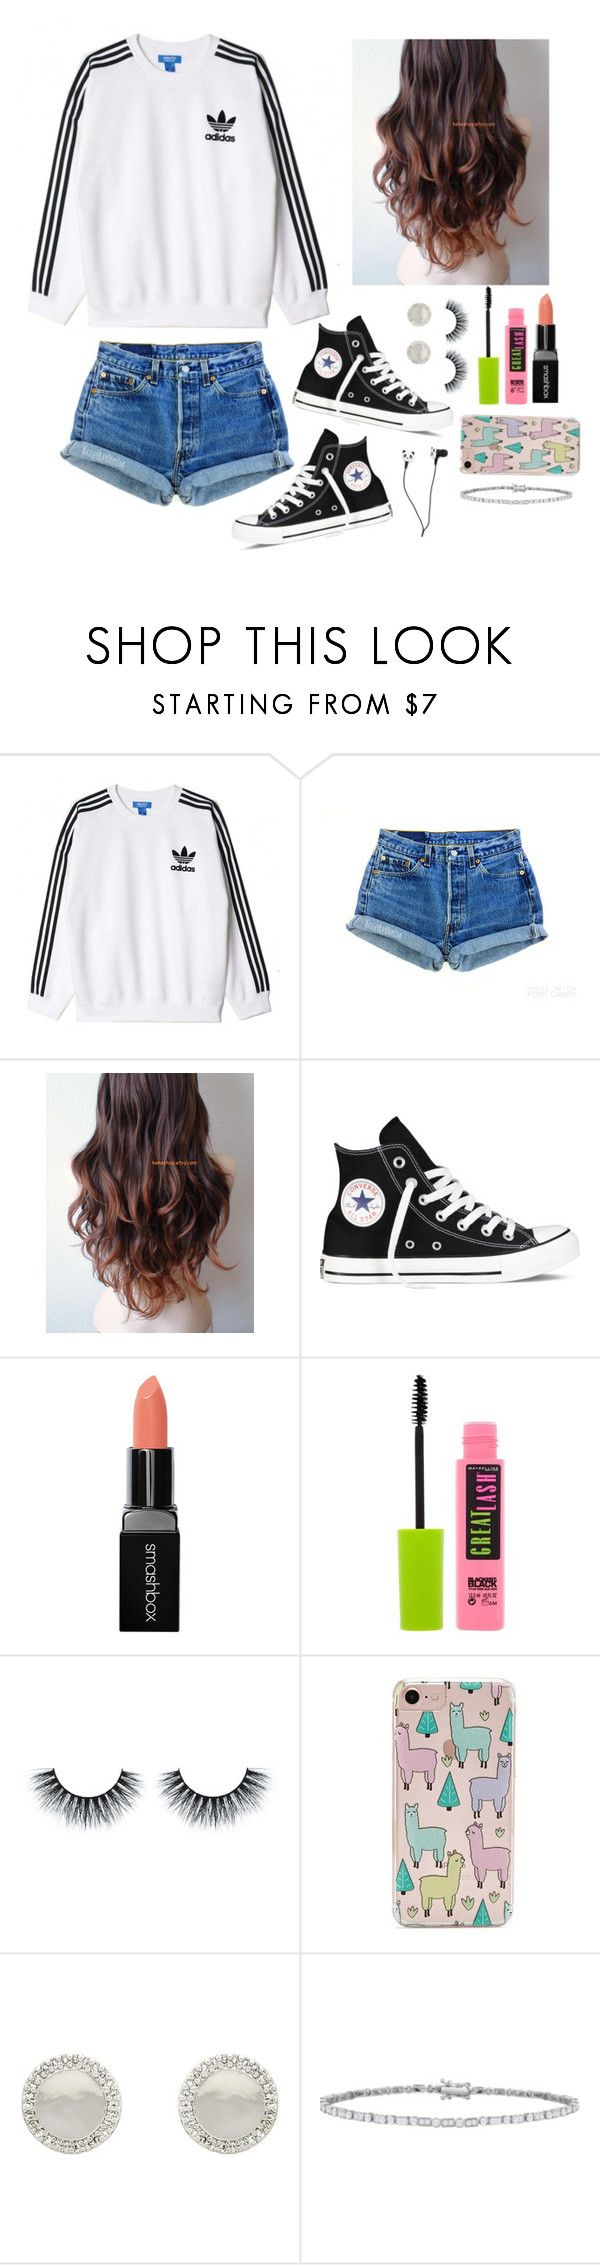 """""""Totally not procrastinating right now instead of working on my project..."""" by gussied-up ❤ liked on Polyvore featuring adidas Originals, Levi's, Converse, Smashbox, Maybelline, Forever 21 and Melissa Odabash"""